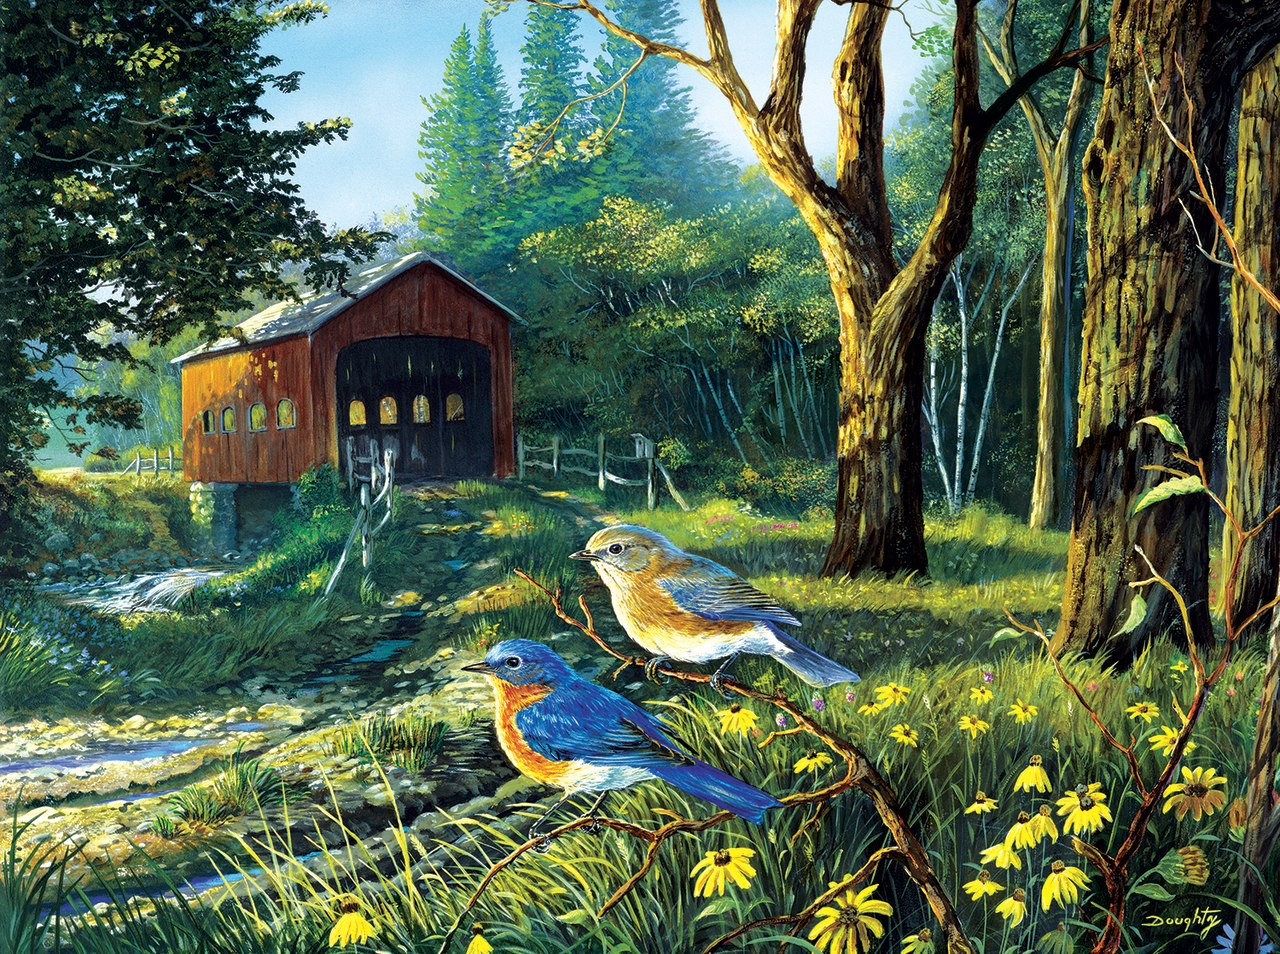 Sleepy Hollow Blue Birds - 1000pc Jigsaw Puzzle By Sunsout  			  					NEW